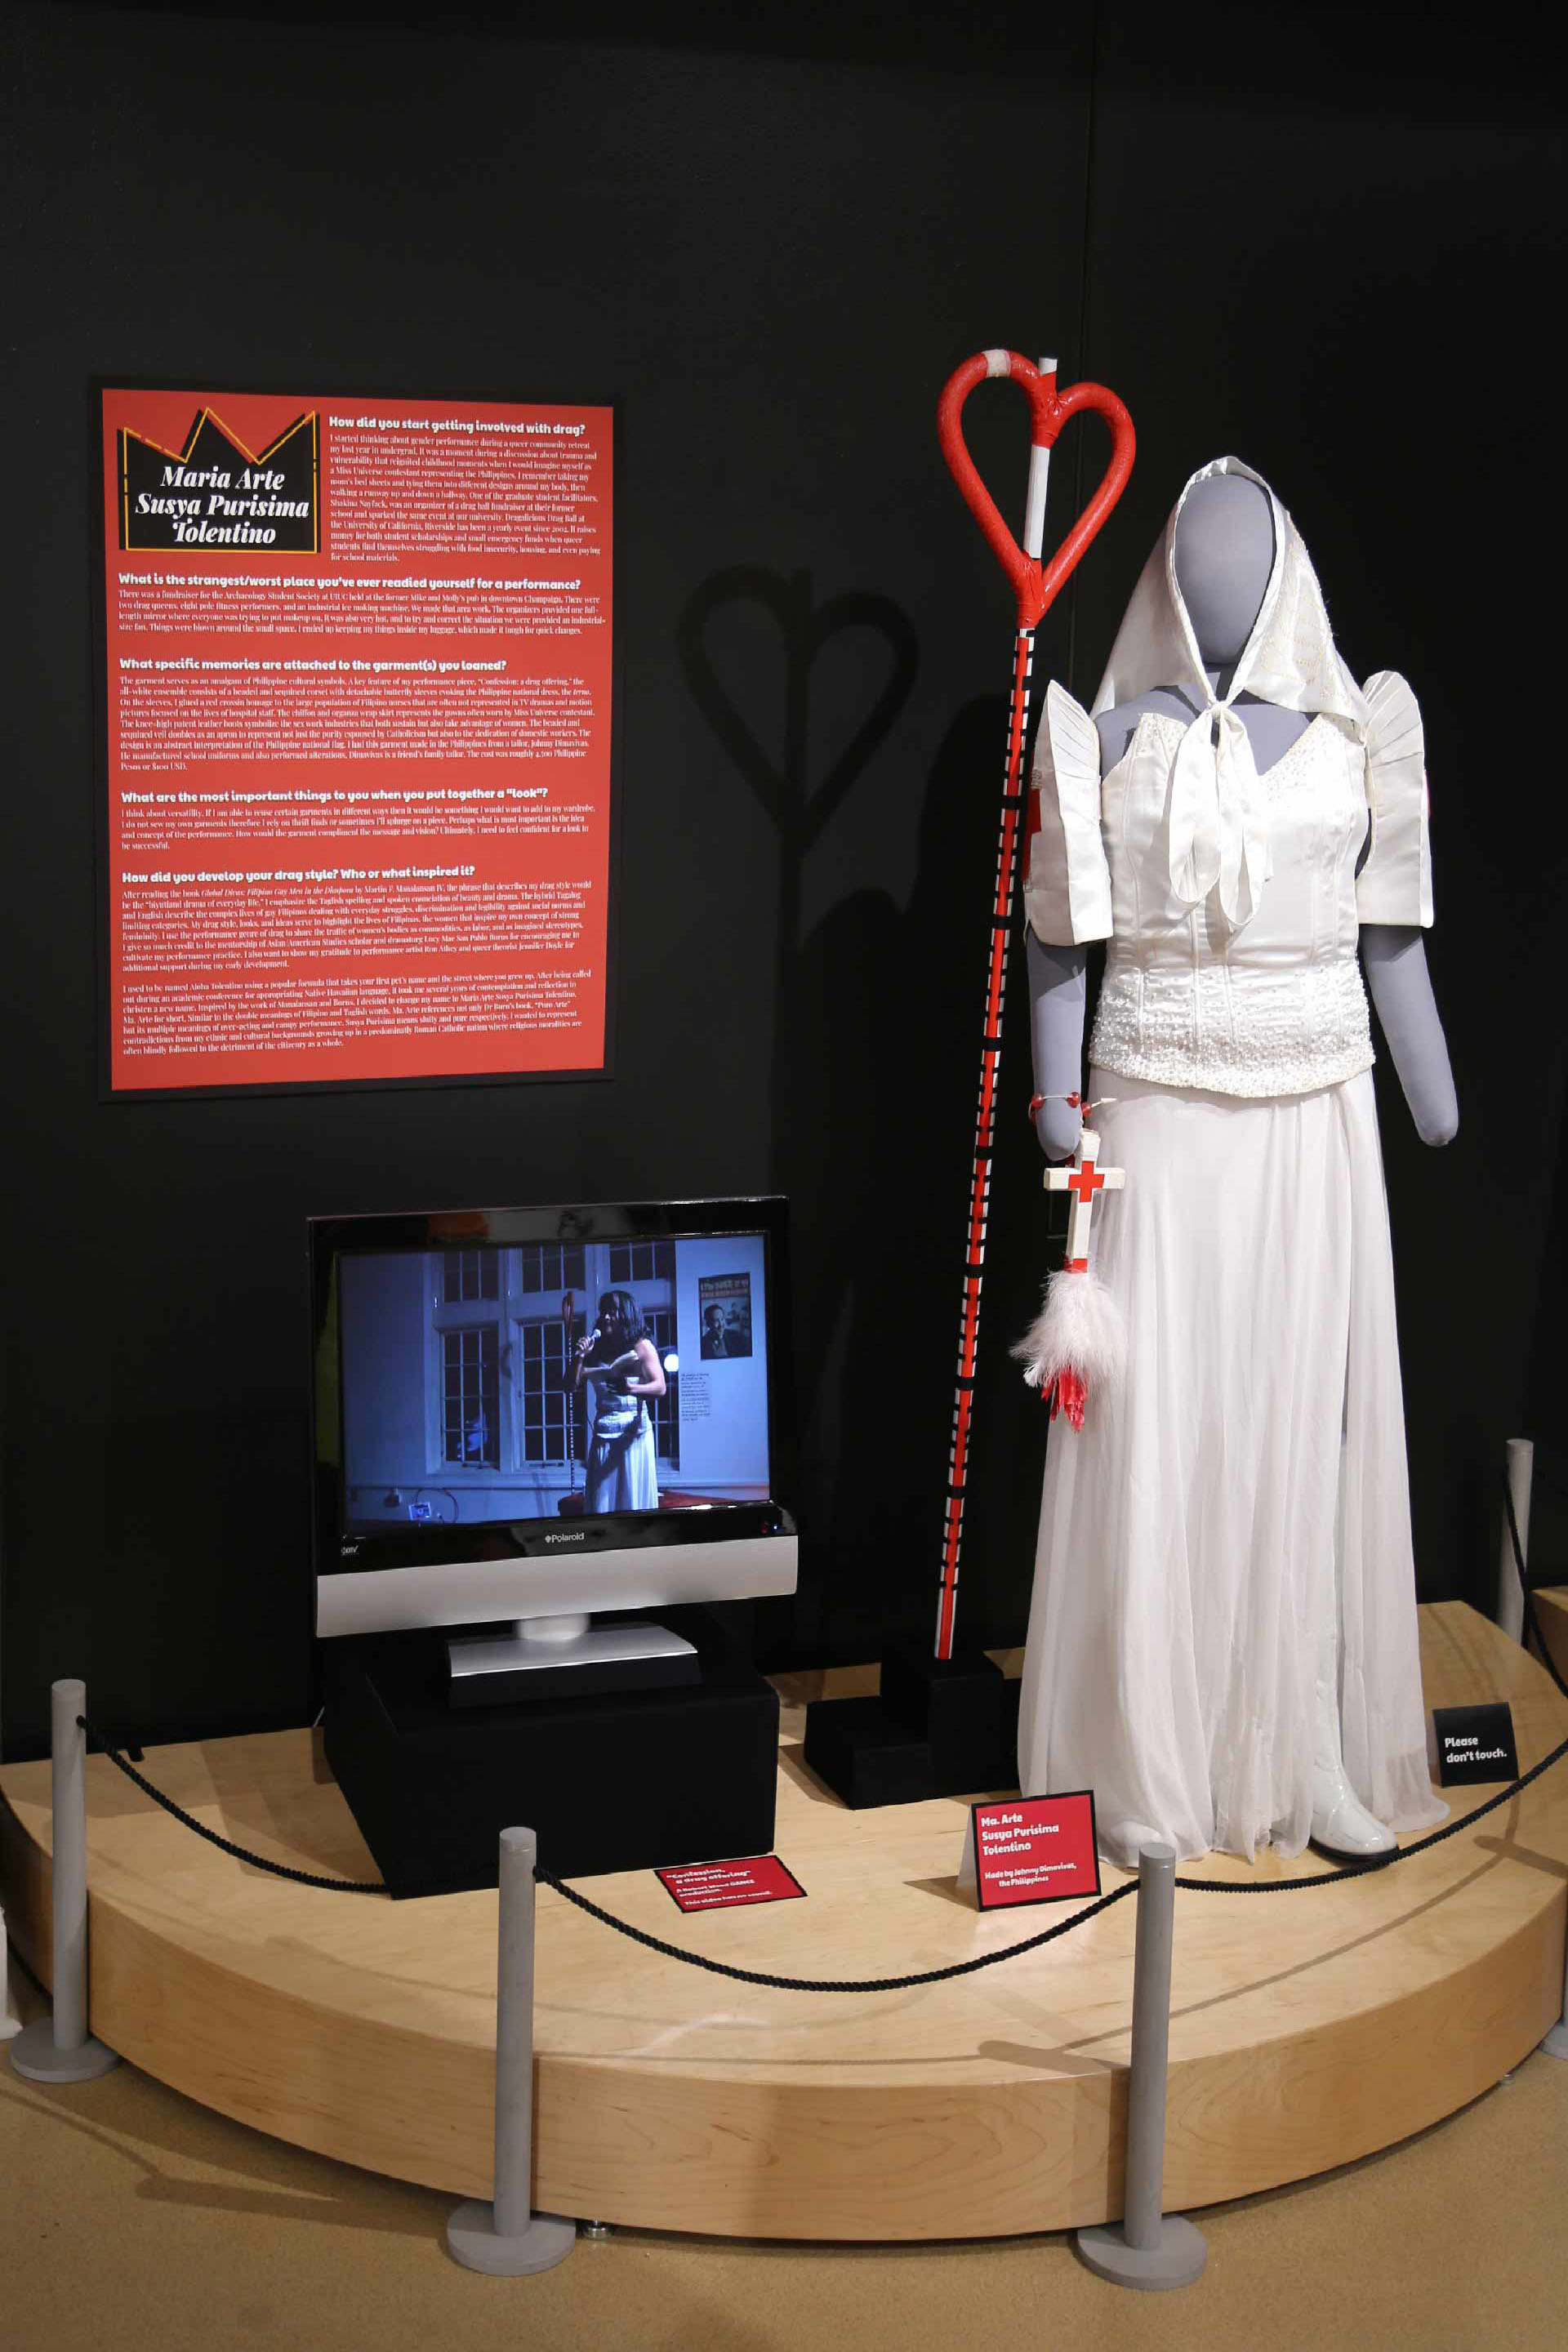 Mannequin in nurse drag costume display next to TV displaying video